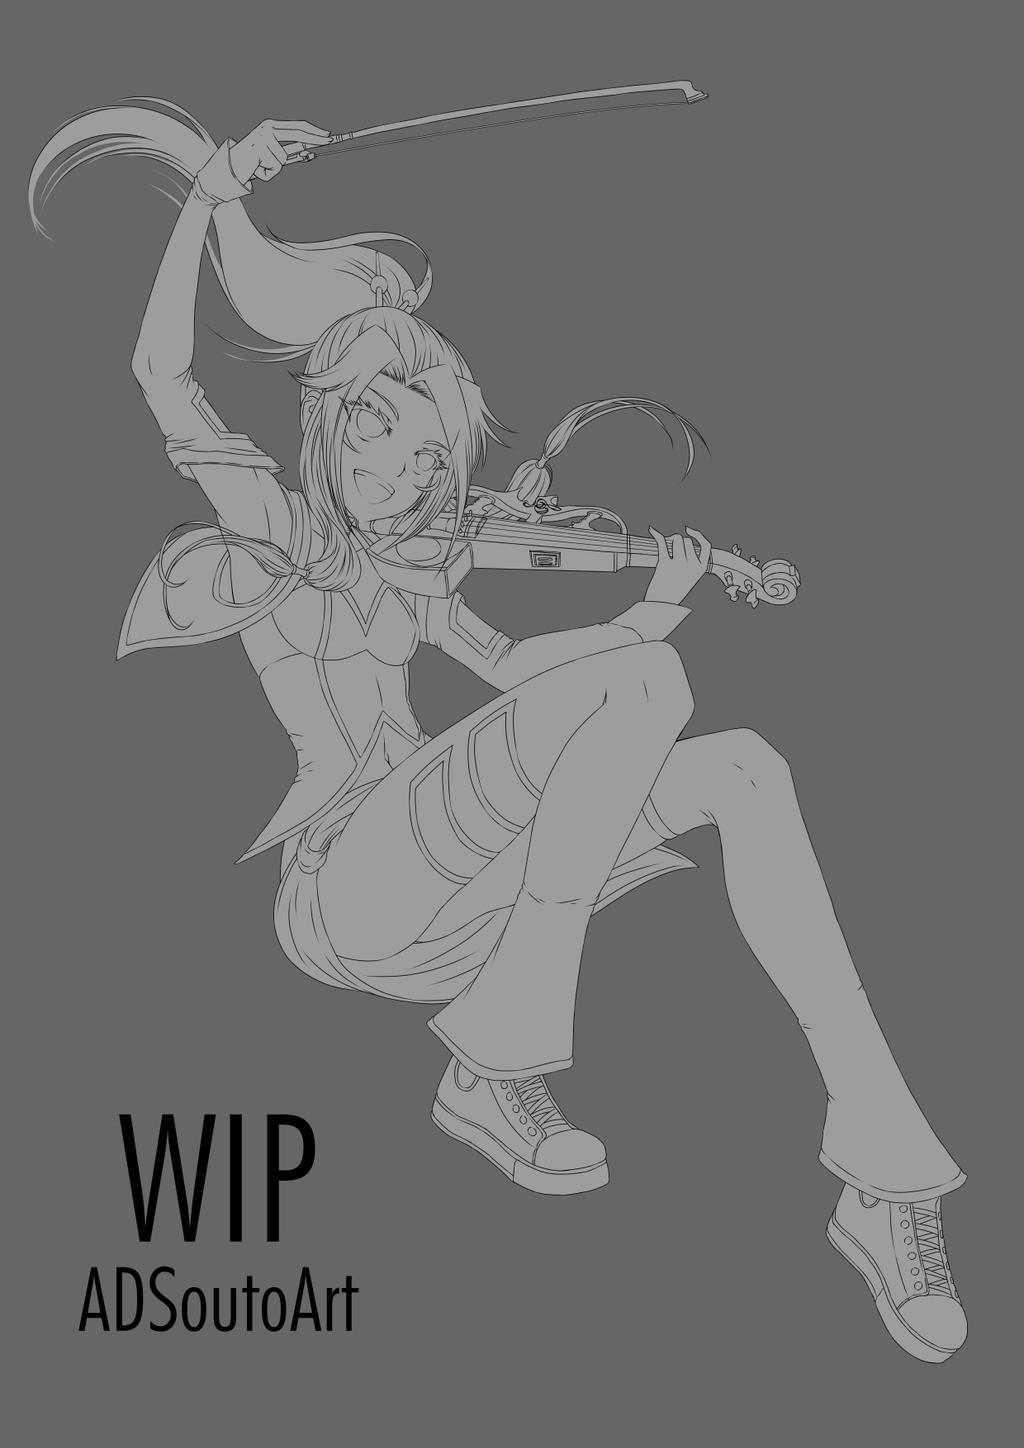 WIP Mana Drawn by ADSouto